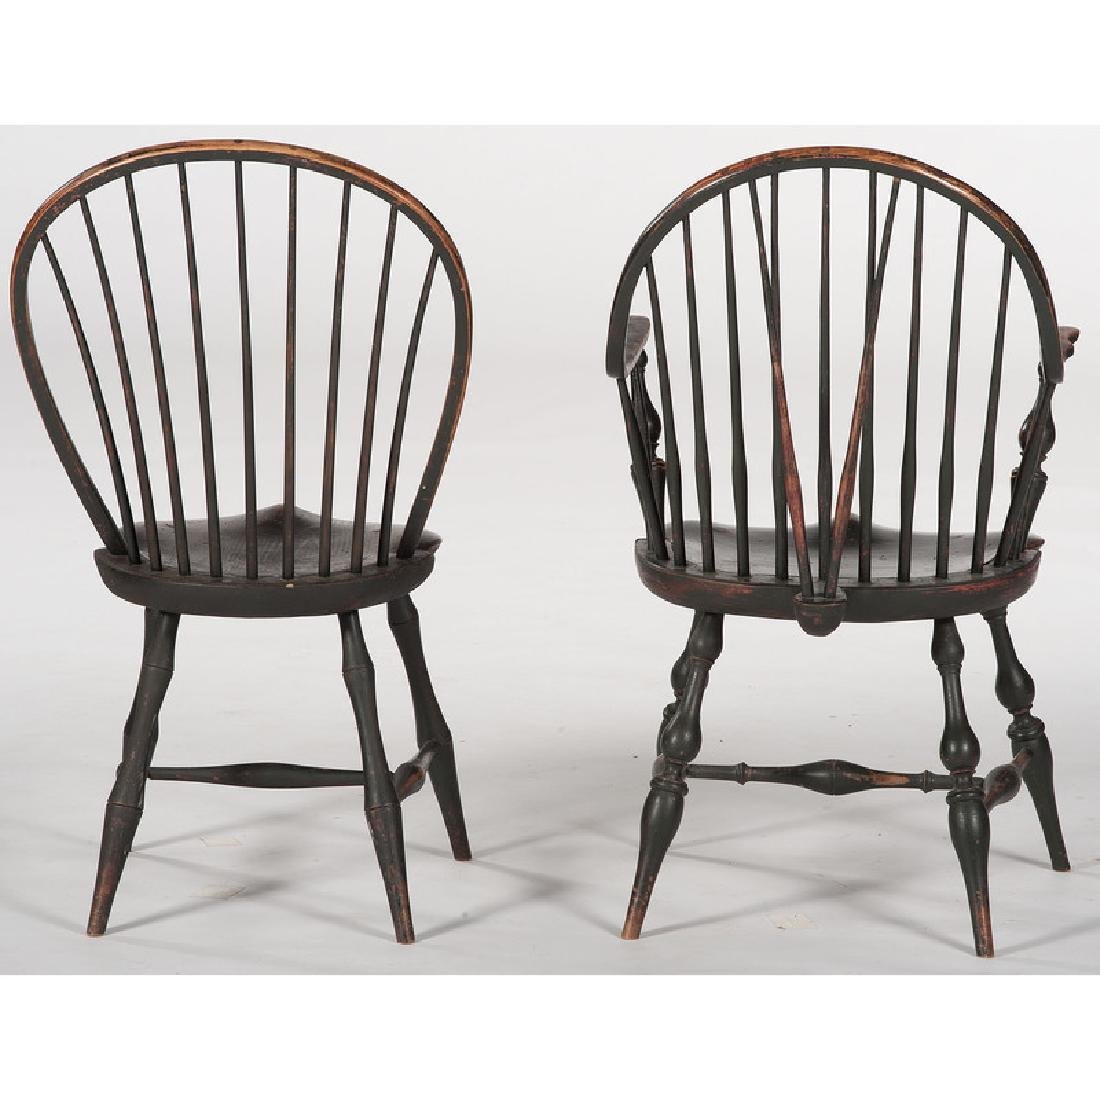 Bowback Windsor Chairs by D.R. Dimes - 3